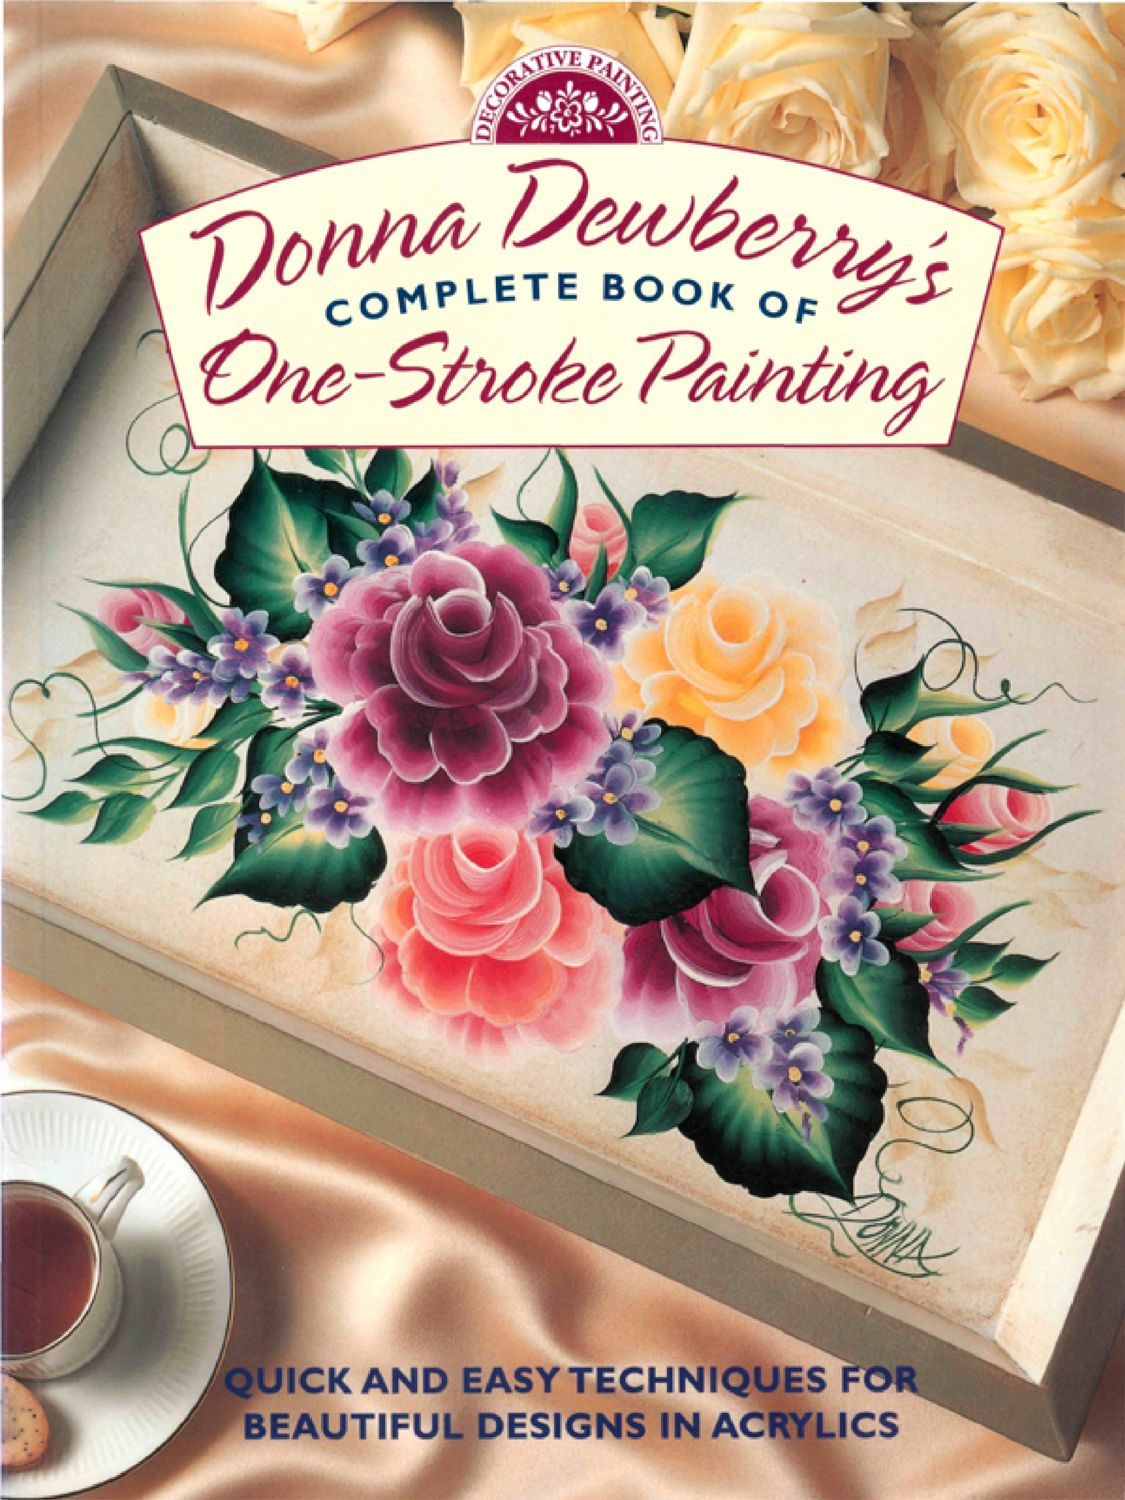 Donna Dewberry's Complete Book of One-Stroke Painting By: Donna Dewberry